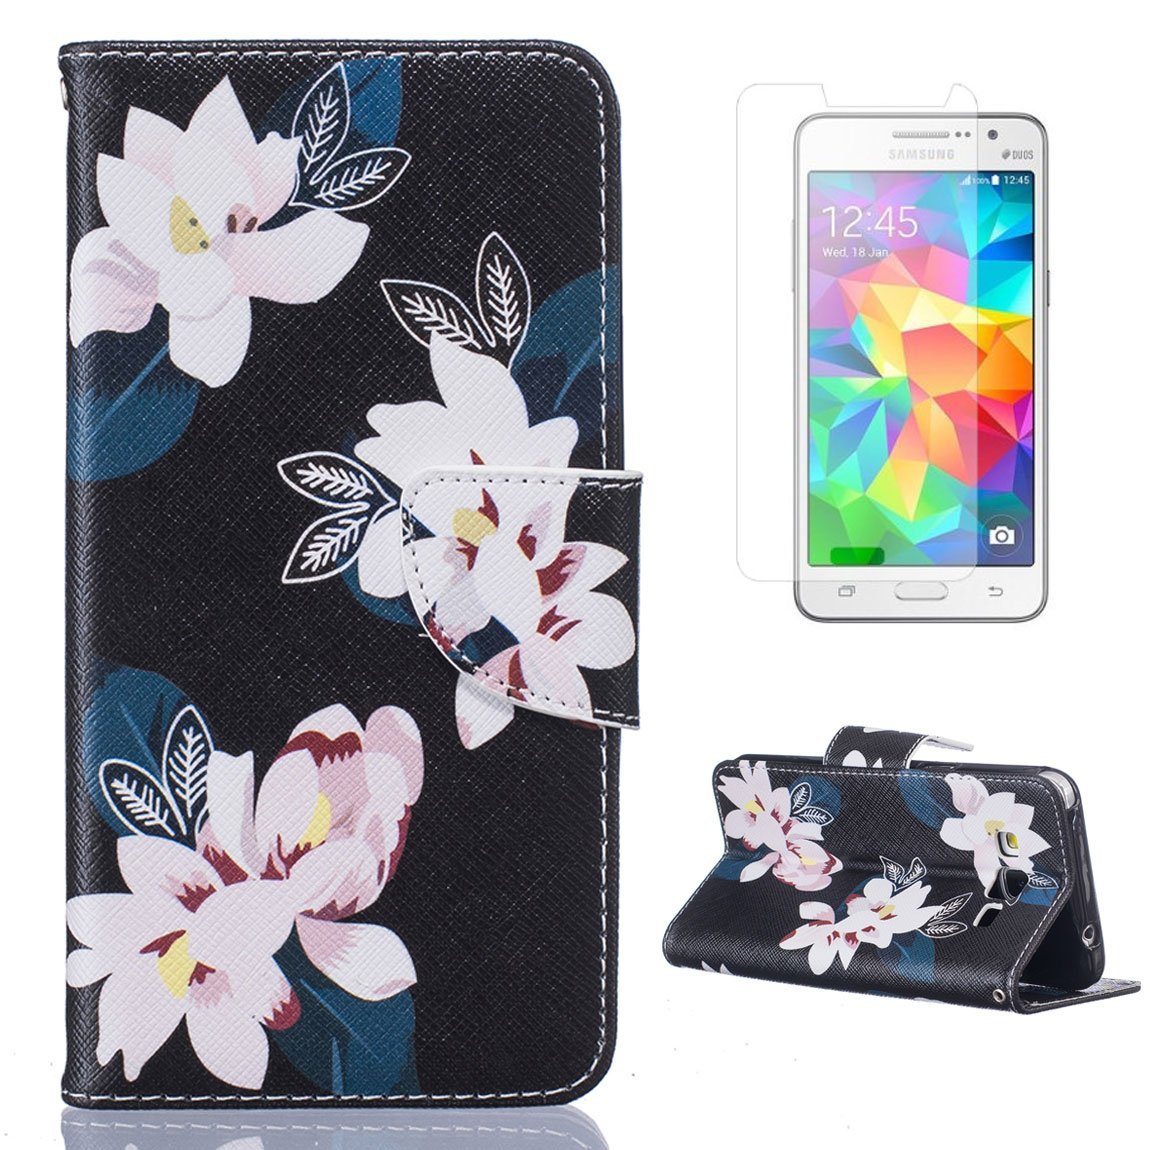 CasesHome Premium PU Leather Samsung Galaxy S5 Wallet Case + Unique Style Pattern Design Soft Shell-Purple Butterflies Flowers Free Screen Protector Card Holder Slot